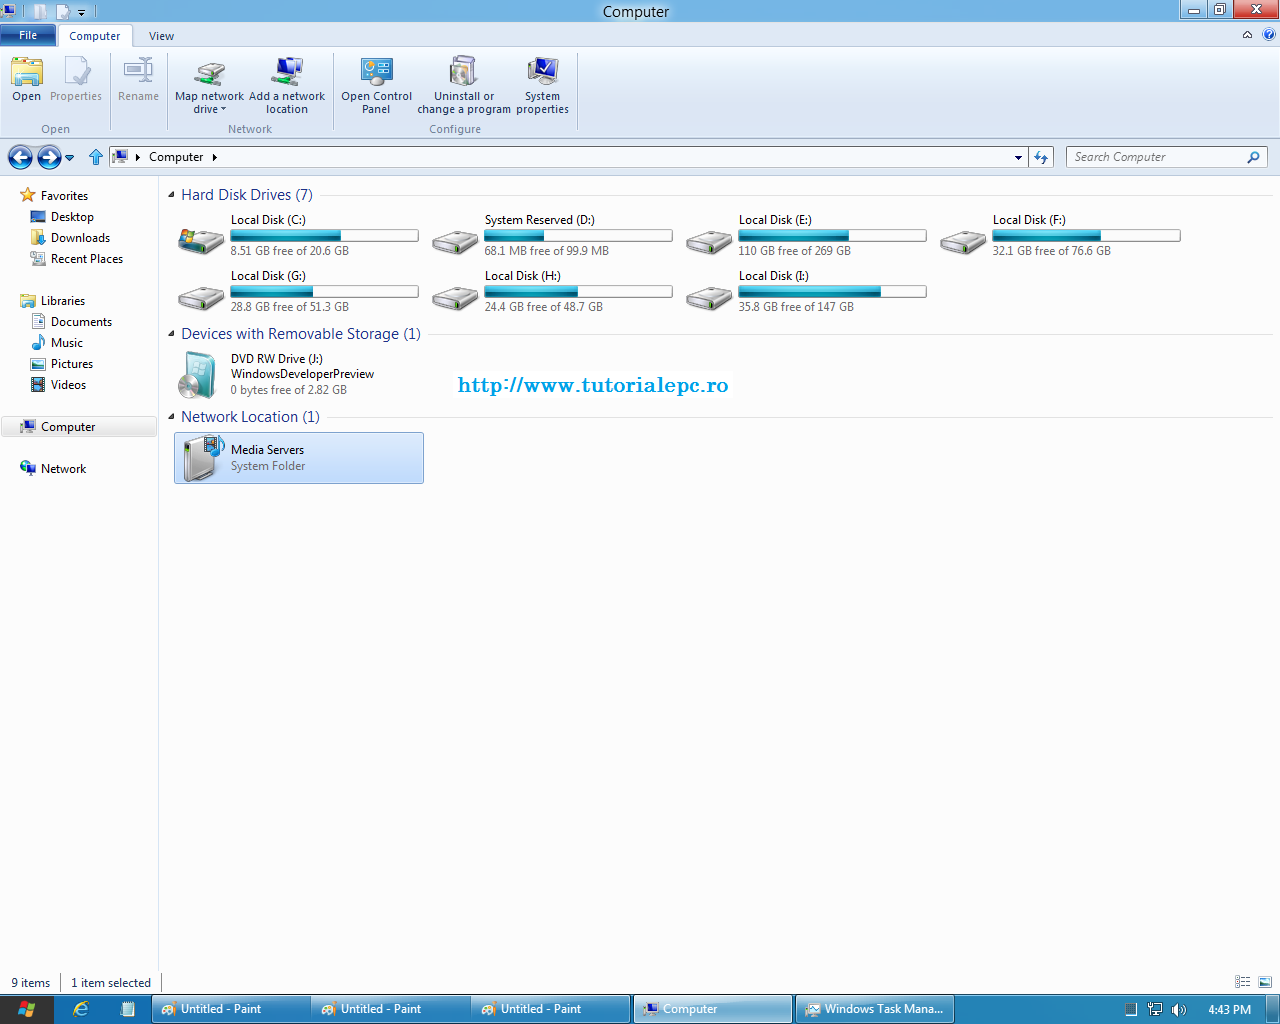 Windows 8 explorer - Metro UI